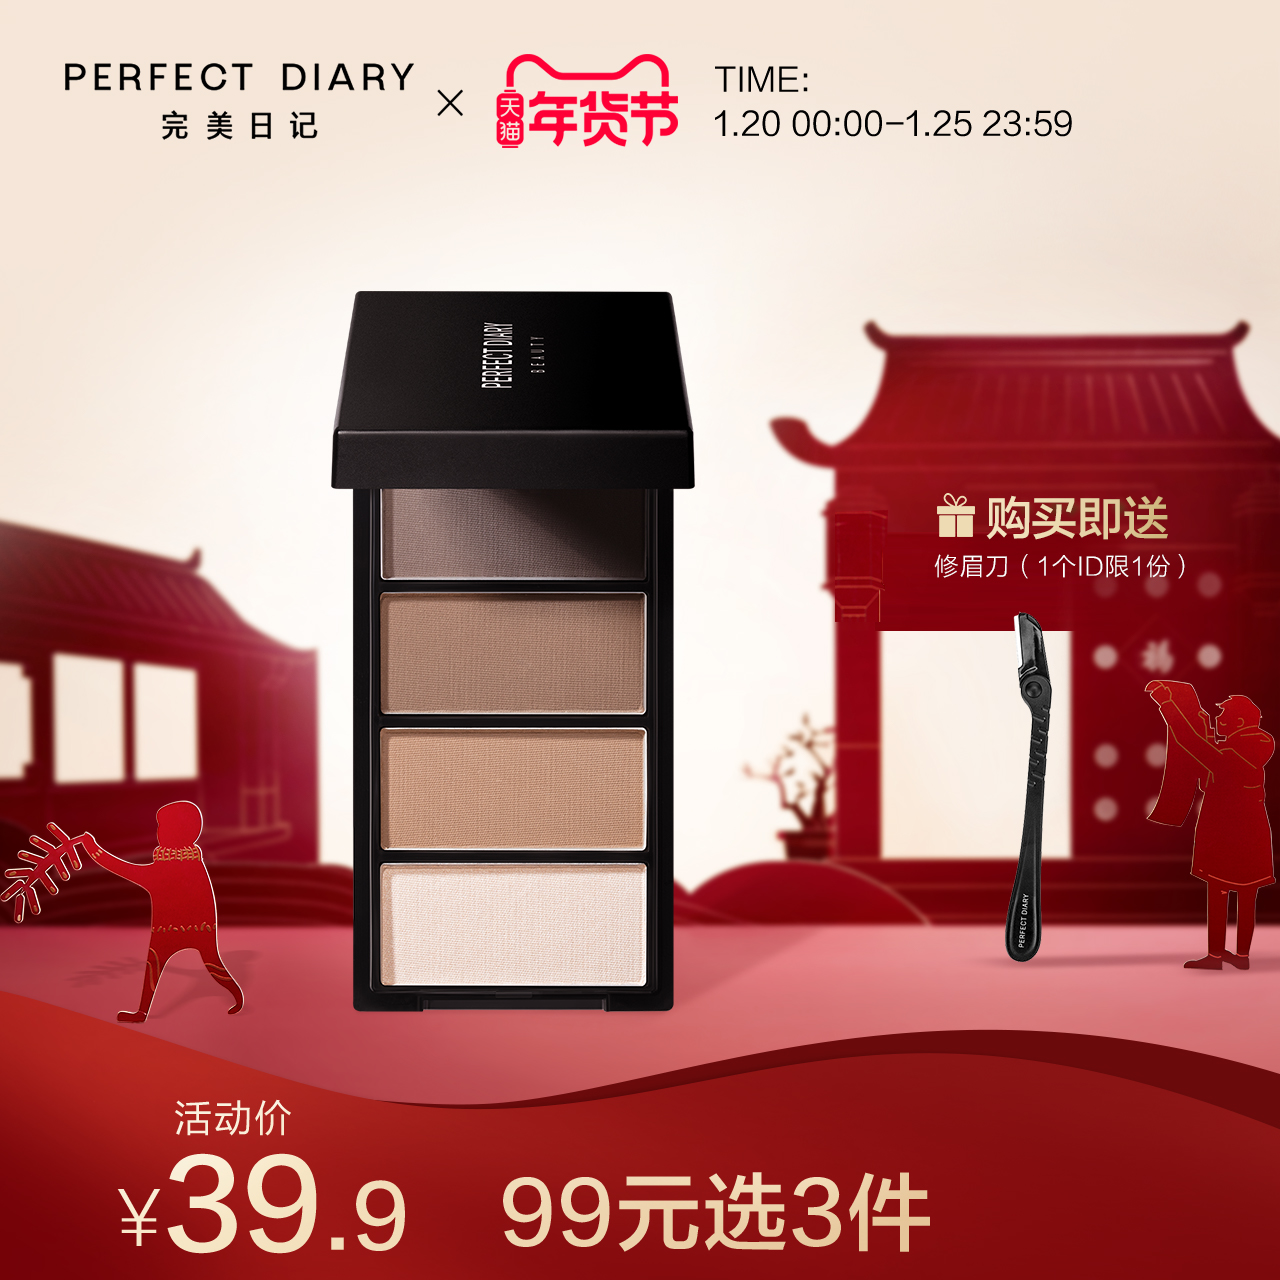 Perfect diary four color eyebrow powder waterproof and perspiration proof, naturally not easy to decolorize, lasting eyebrow pencil girl